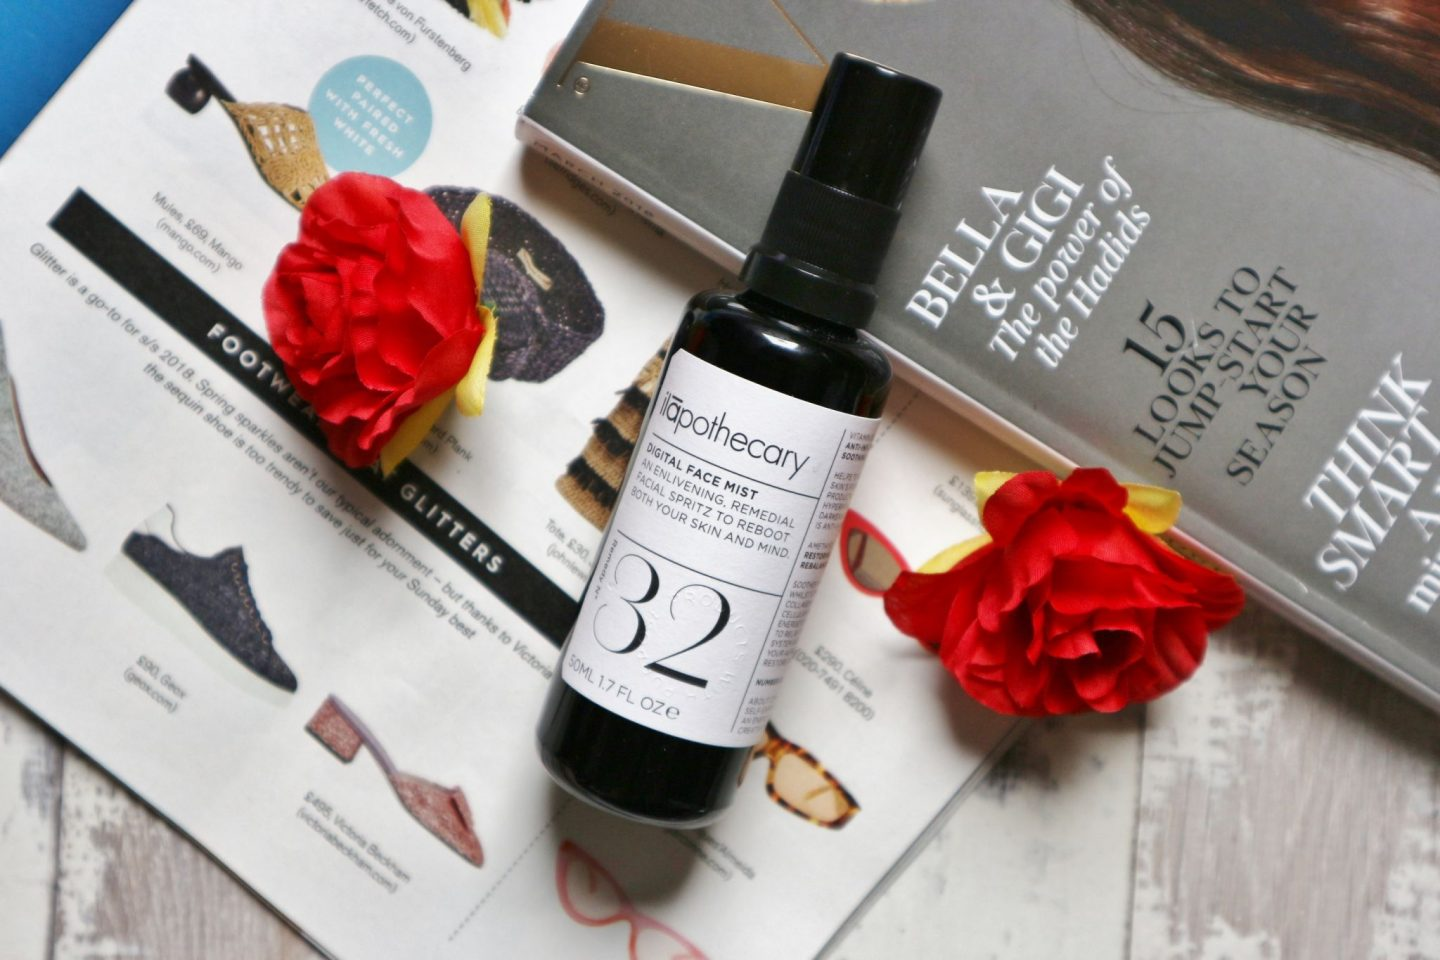 ilapothecary Digital Face Mist